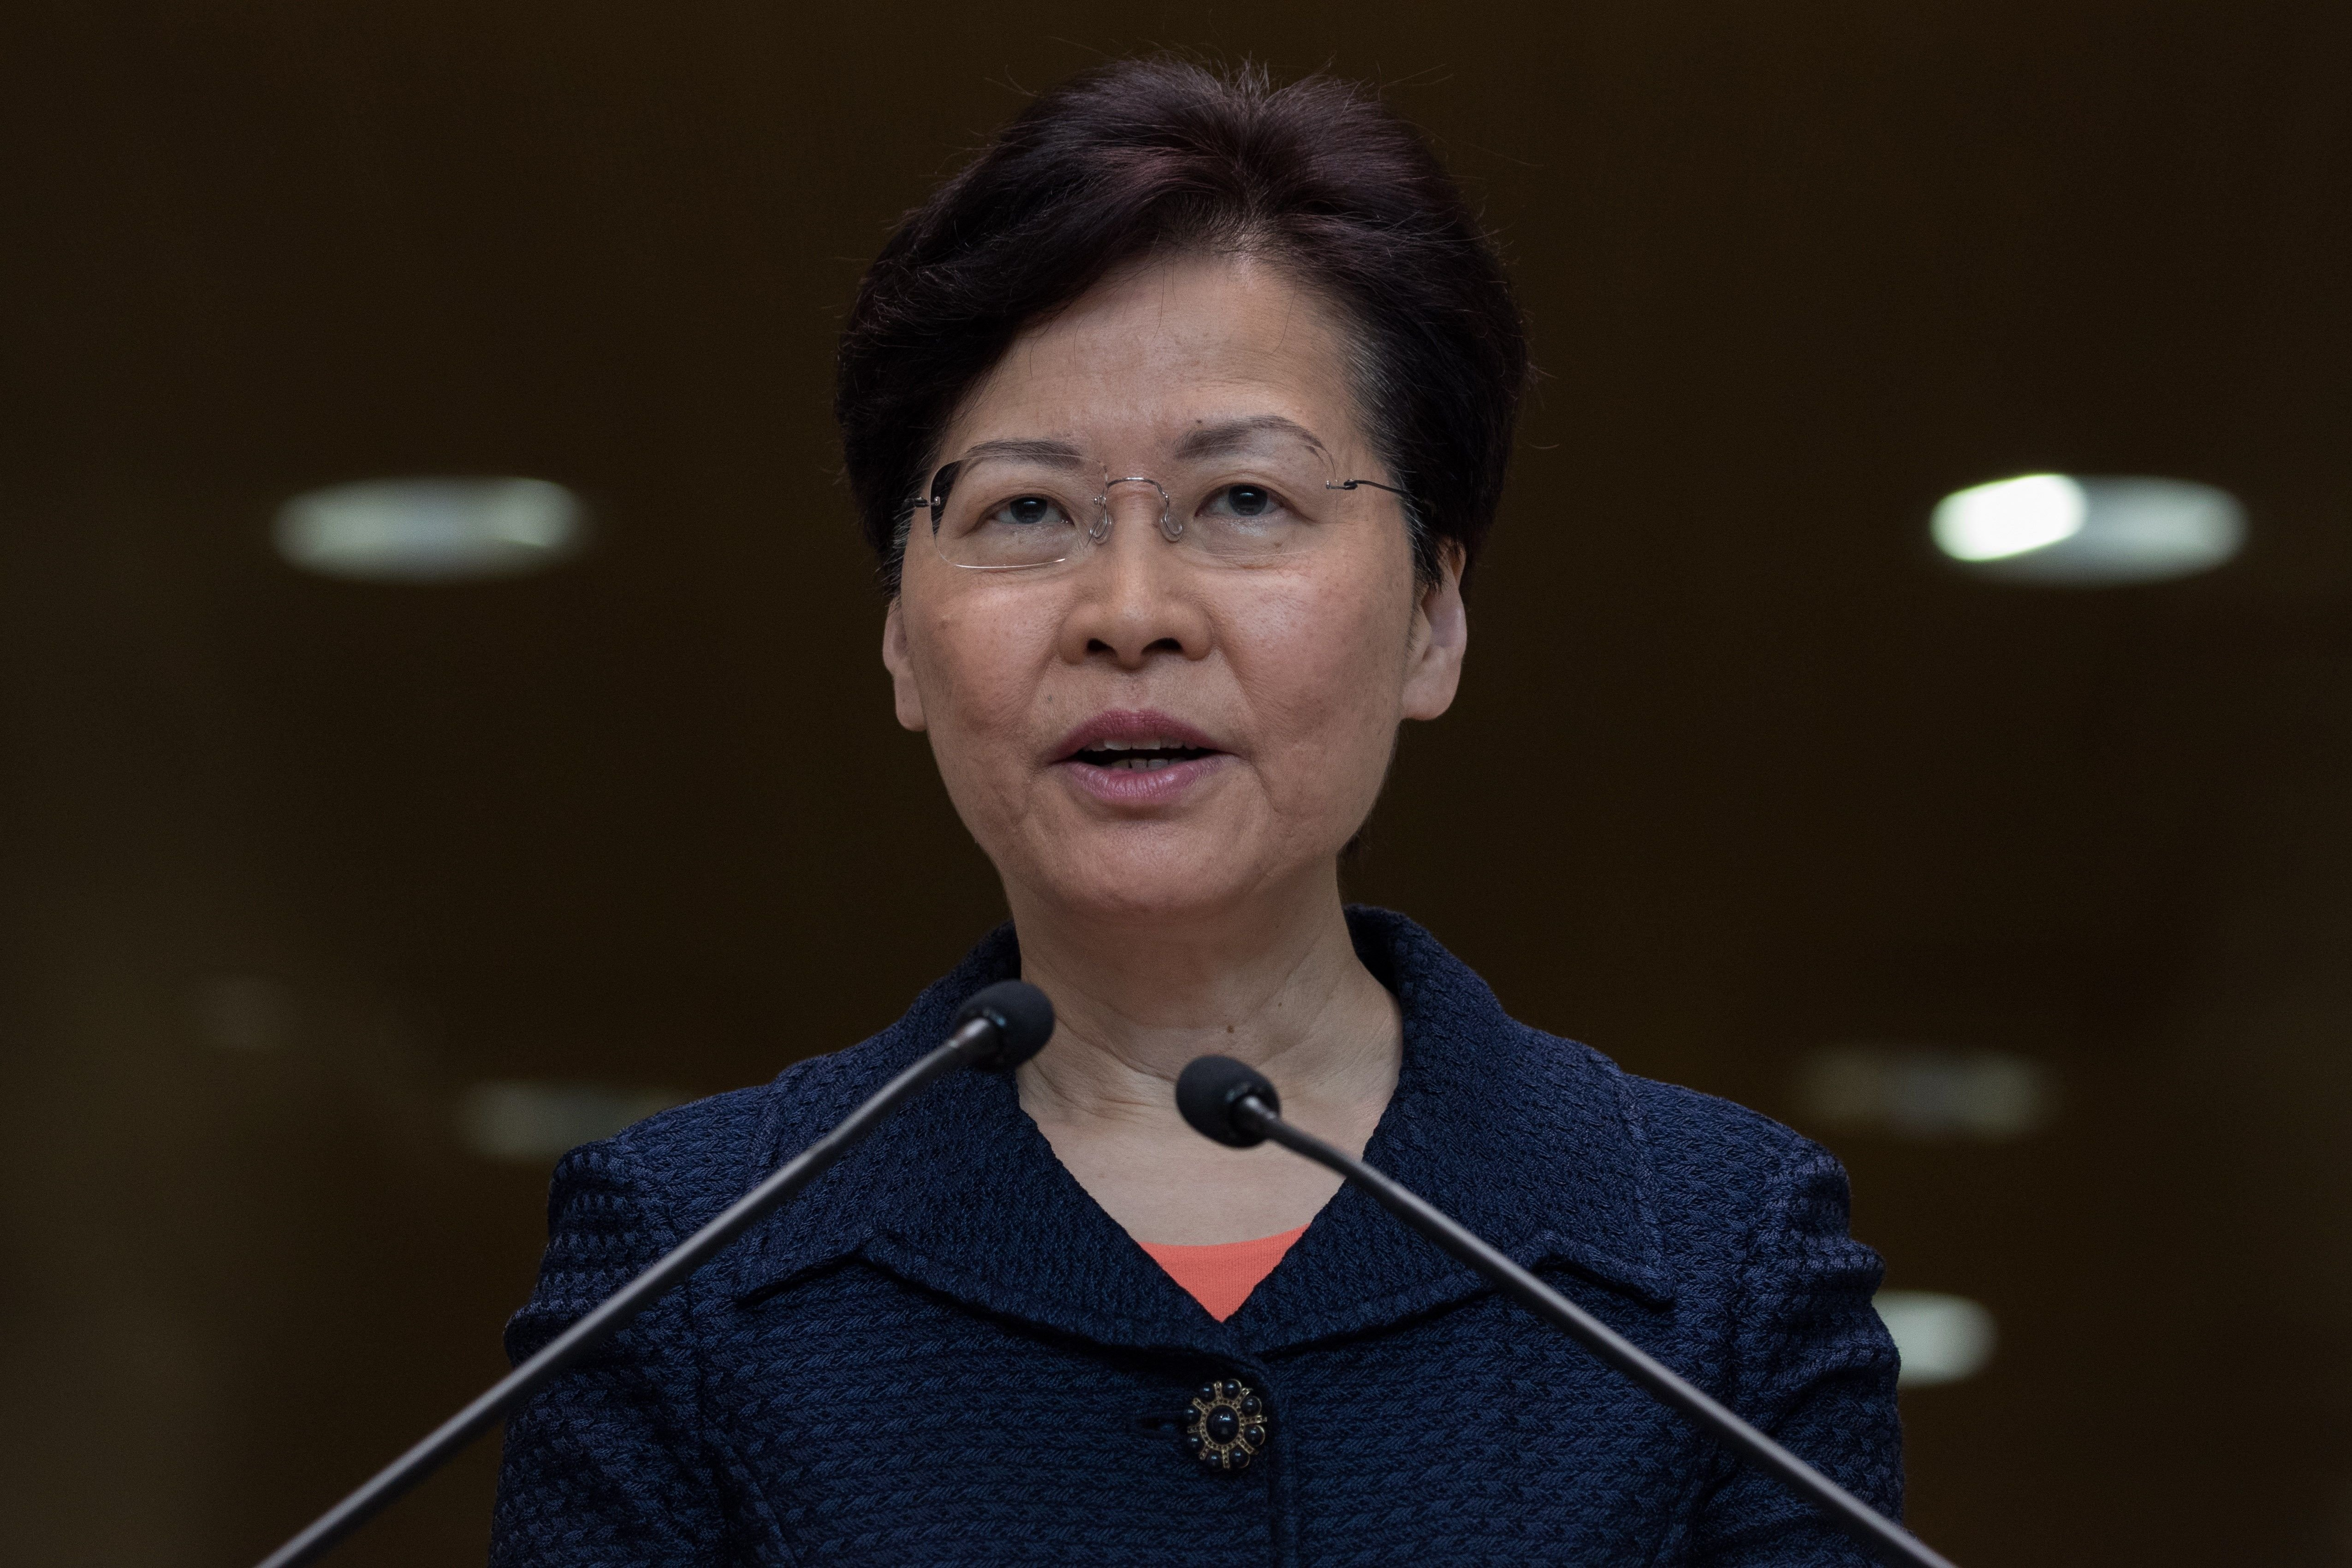 Carrie Lam Govern Hong Kong EFE